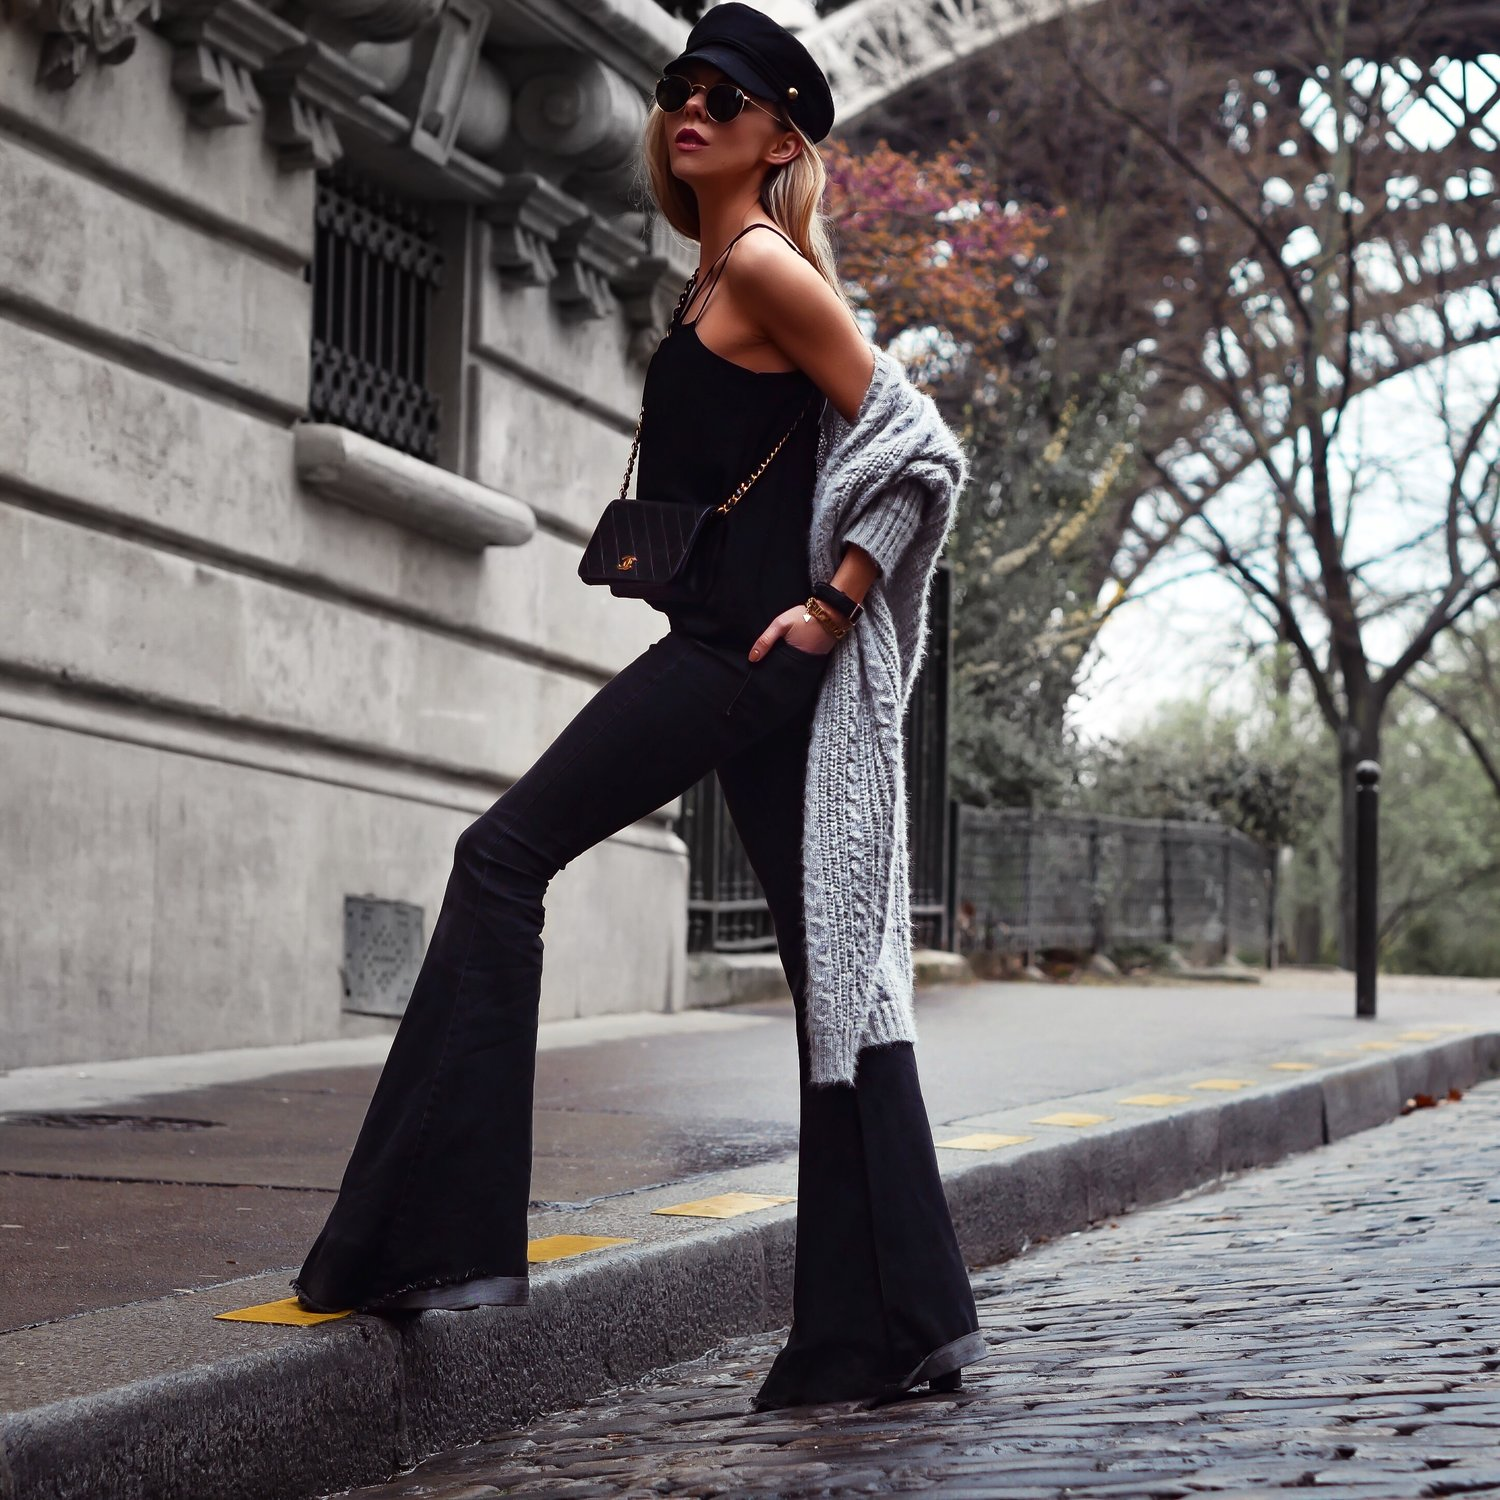 paris, travel, haul, affordable fashion, streetstyle, inspiration, what to wear, fashion, lookbook, style, fashion blogger, laura blair, youtuber, london fashion girl, blogger tips, blogger industry, how to be a blogger